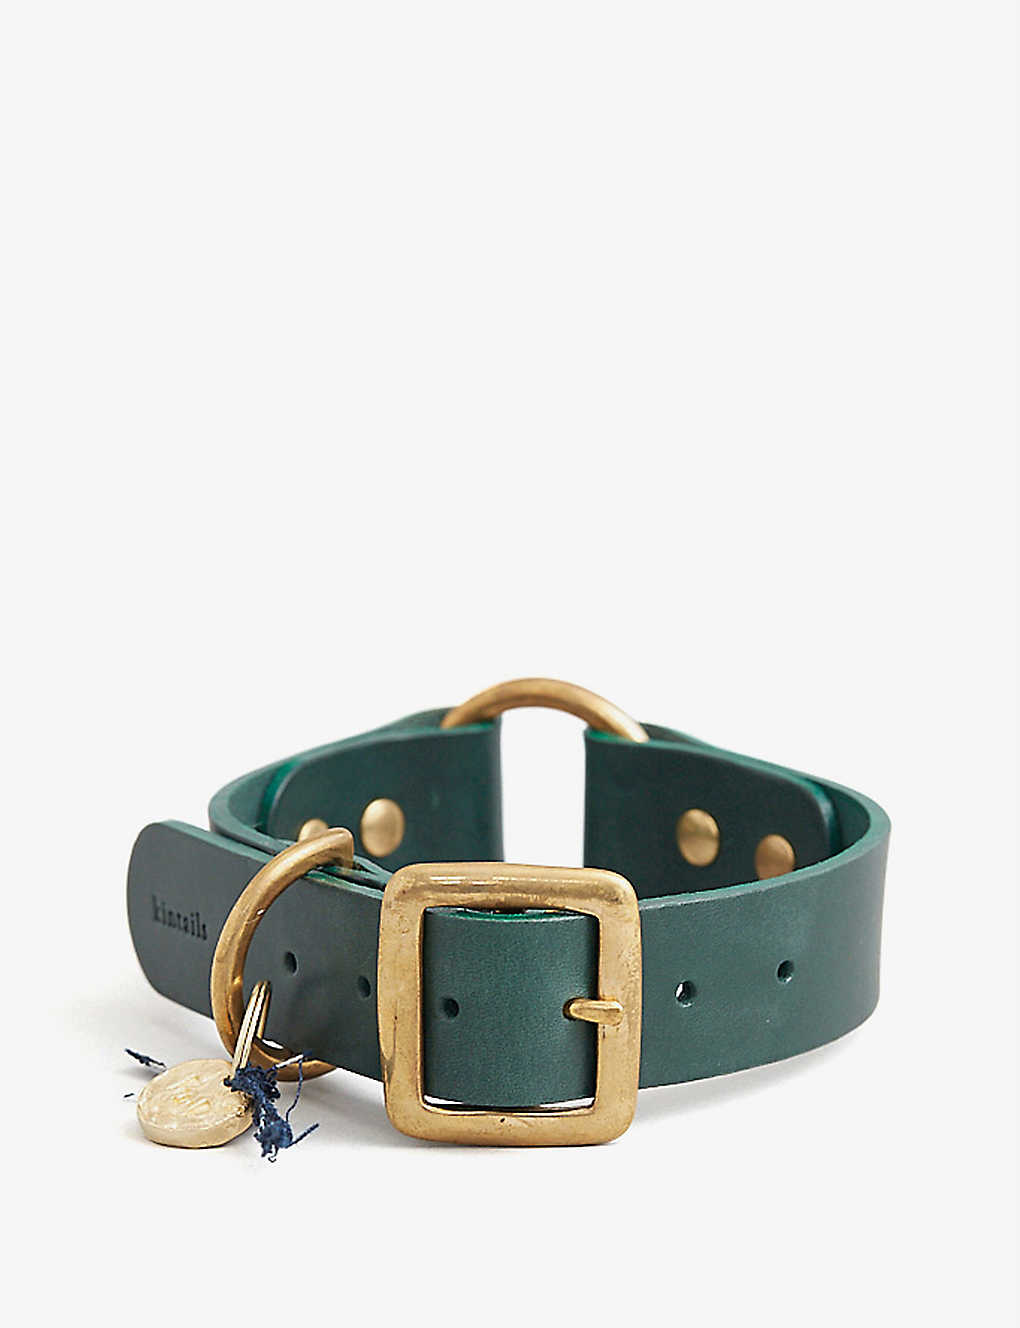 KINTAILS: Leather dog collar